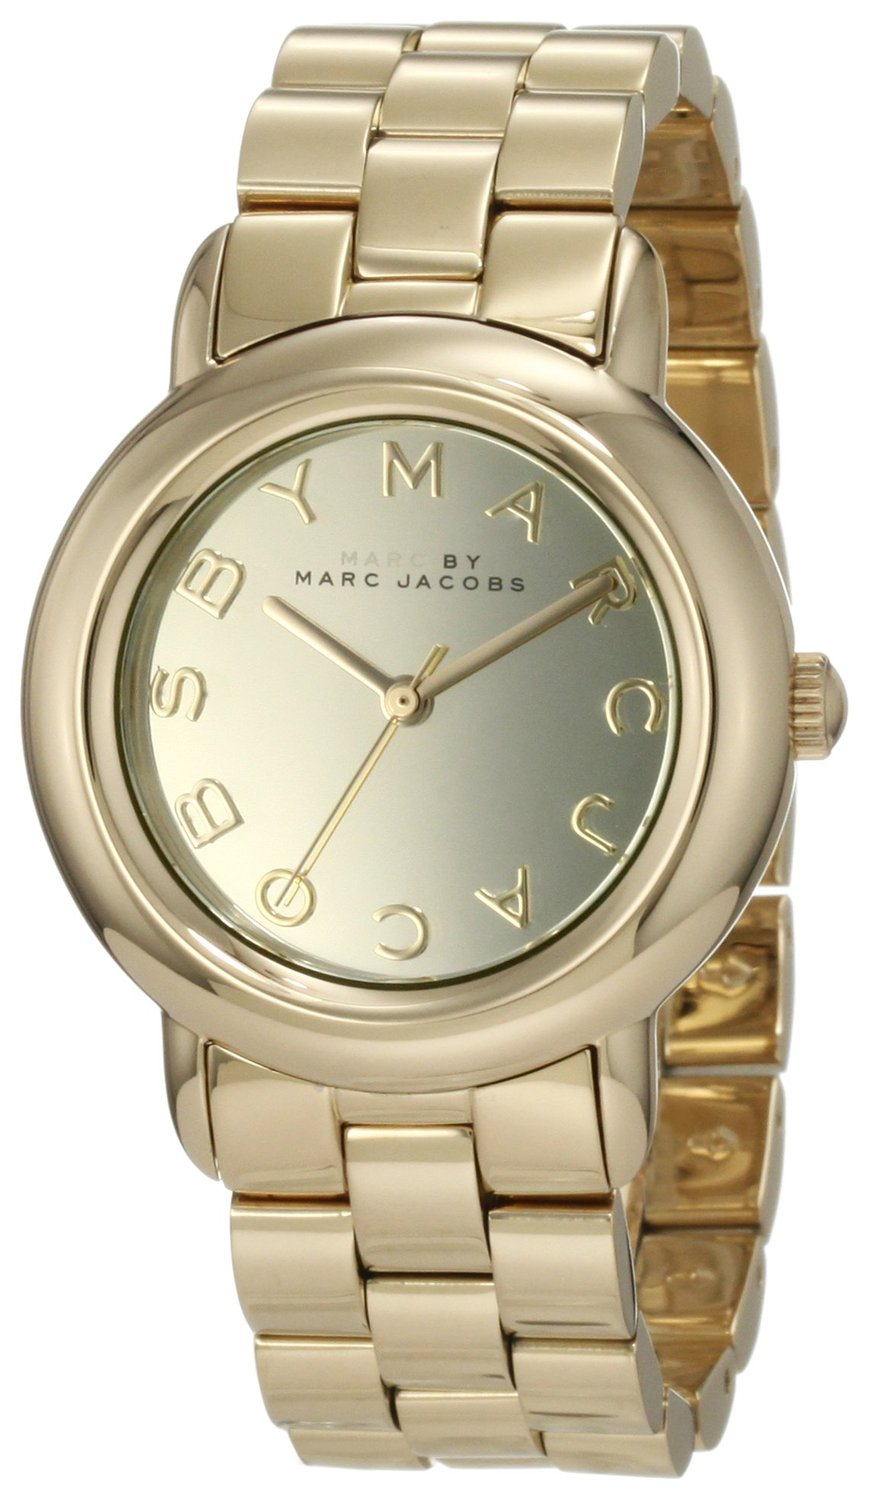 Plated ladies watch mbm3098: marc jacobs: watches